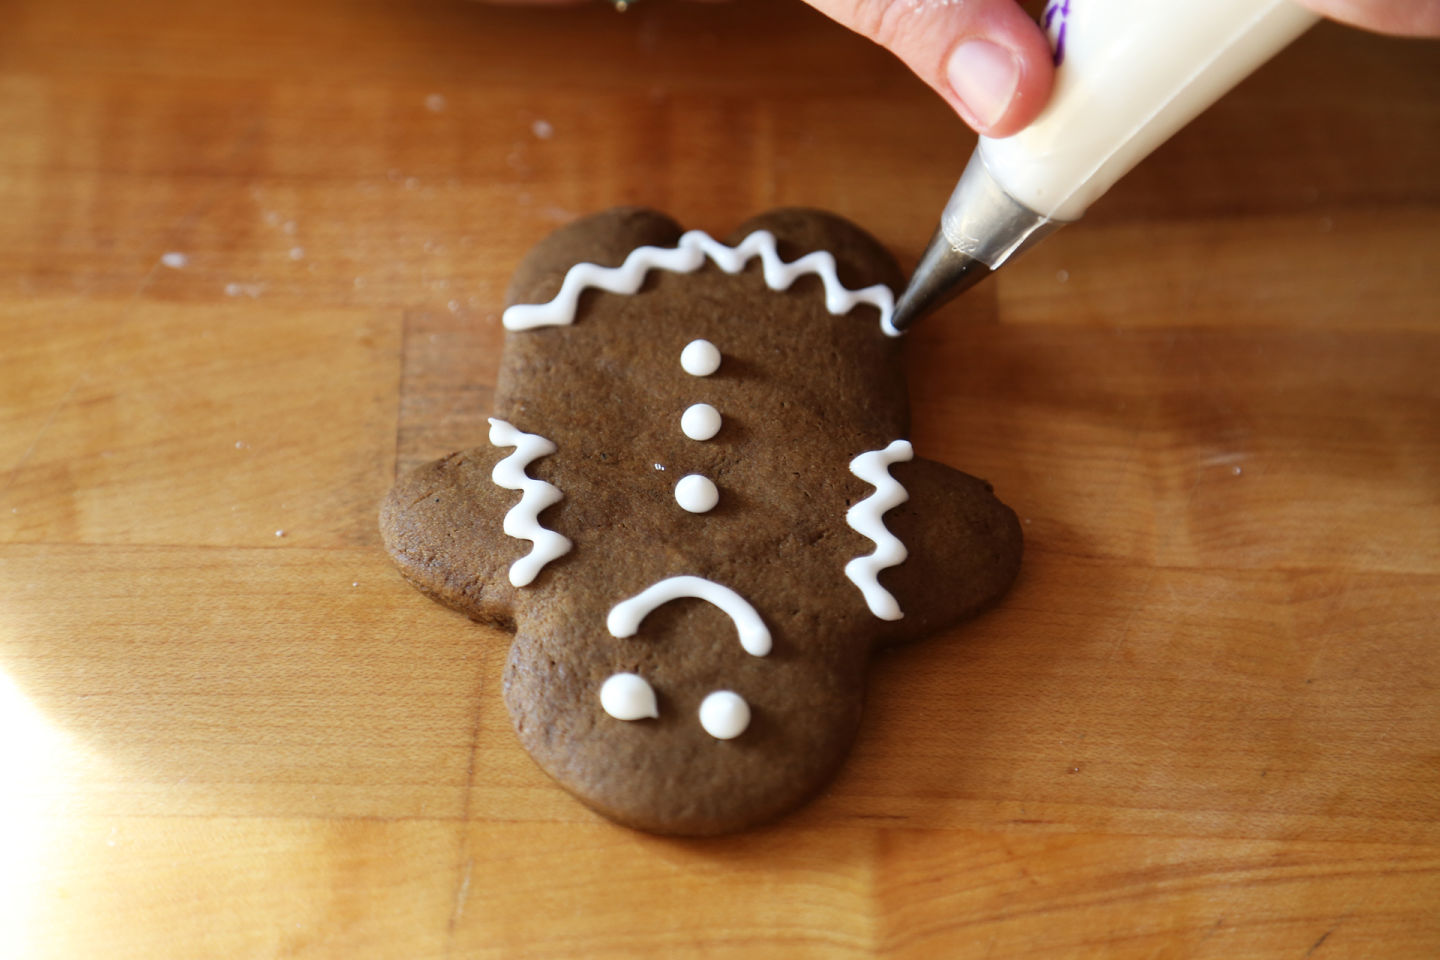 Decorating a gingerbread person with royal icing.  Wendy Goodfriend